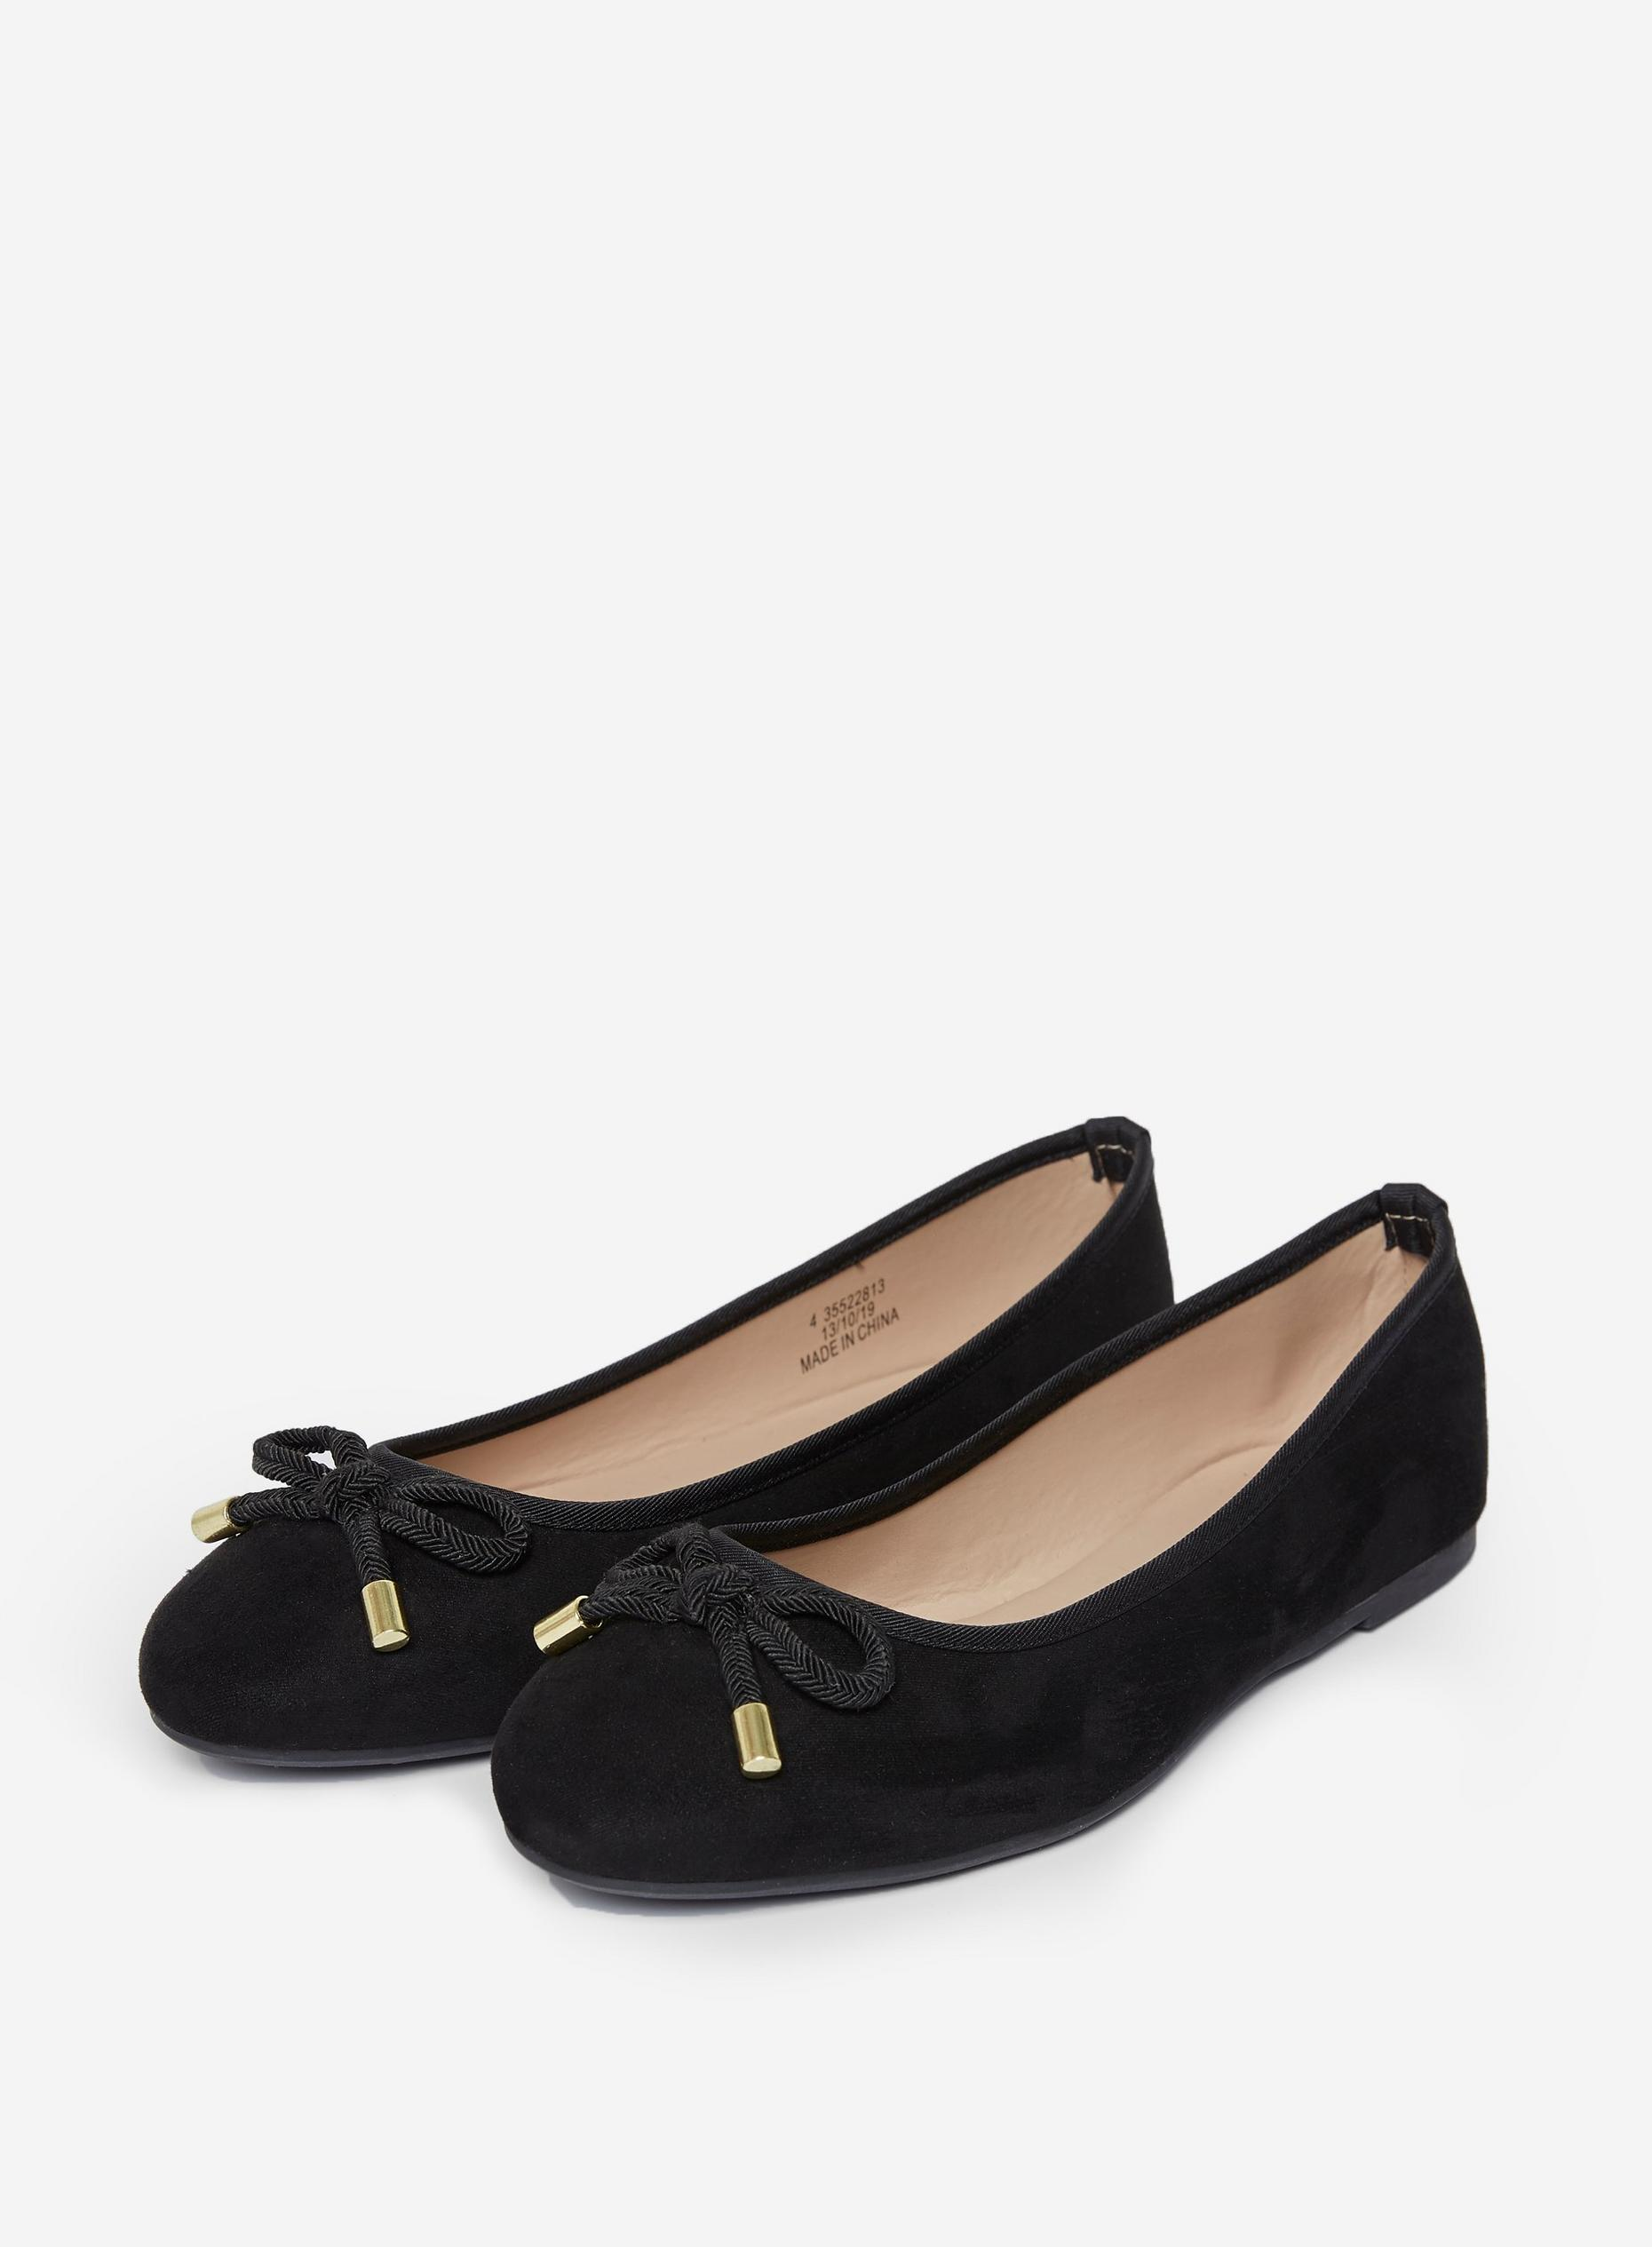 Black Peach Ballerina Pumps